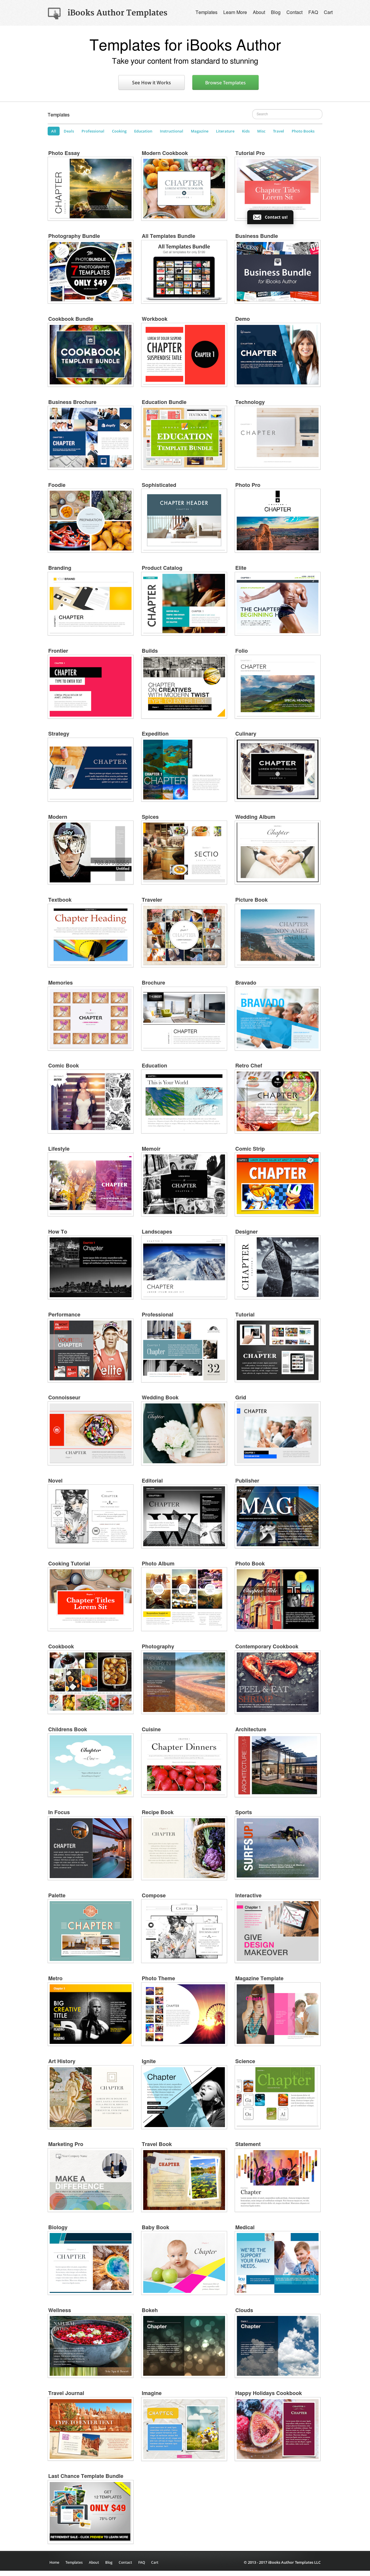 Ibooks Author Templates Competitors, Revenue and Employees - Owler ...